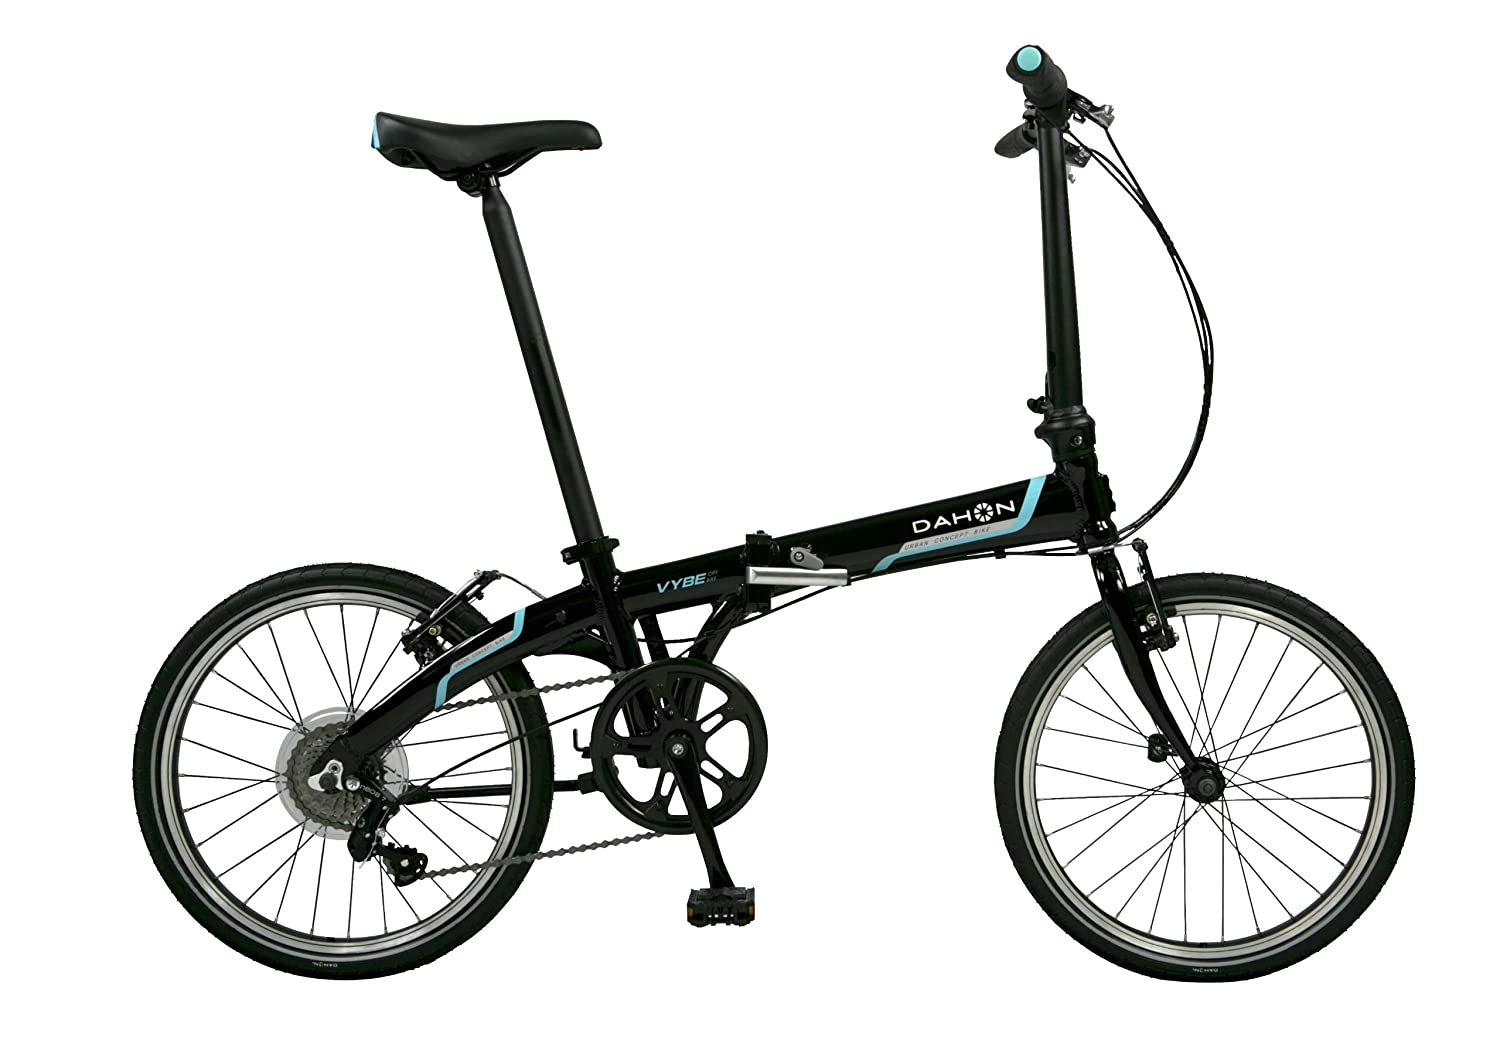 Dahon Vybe C7A Obsidian Folding Bike Bicycle Vibe